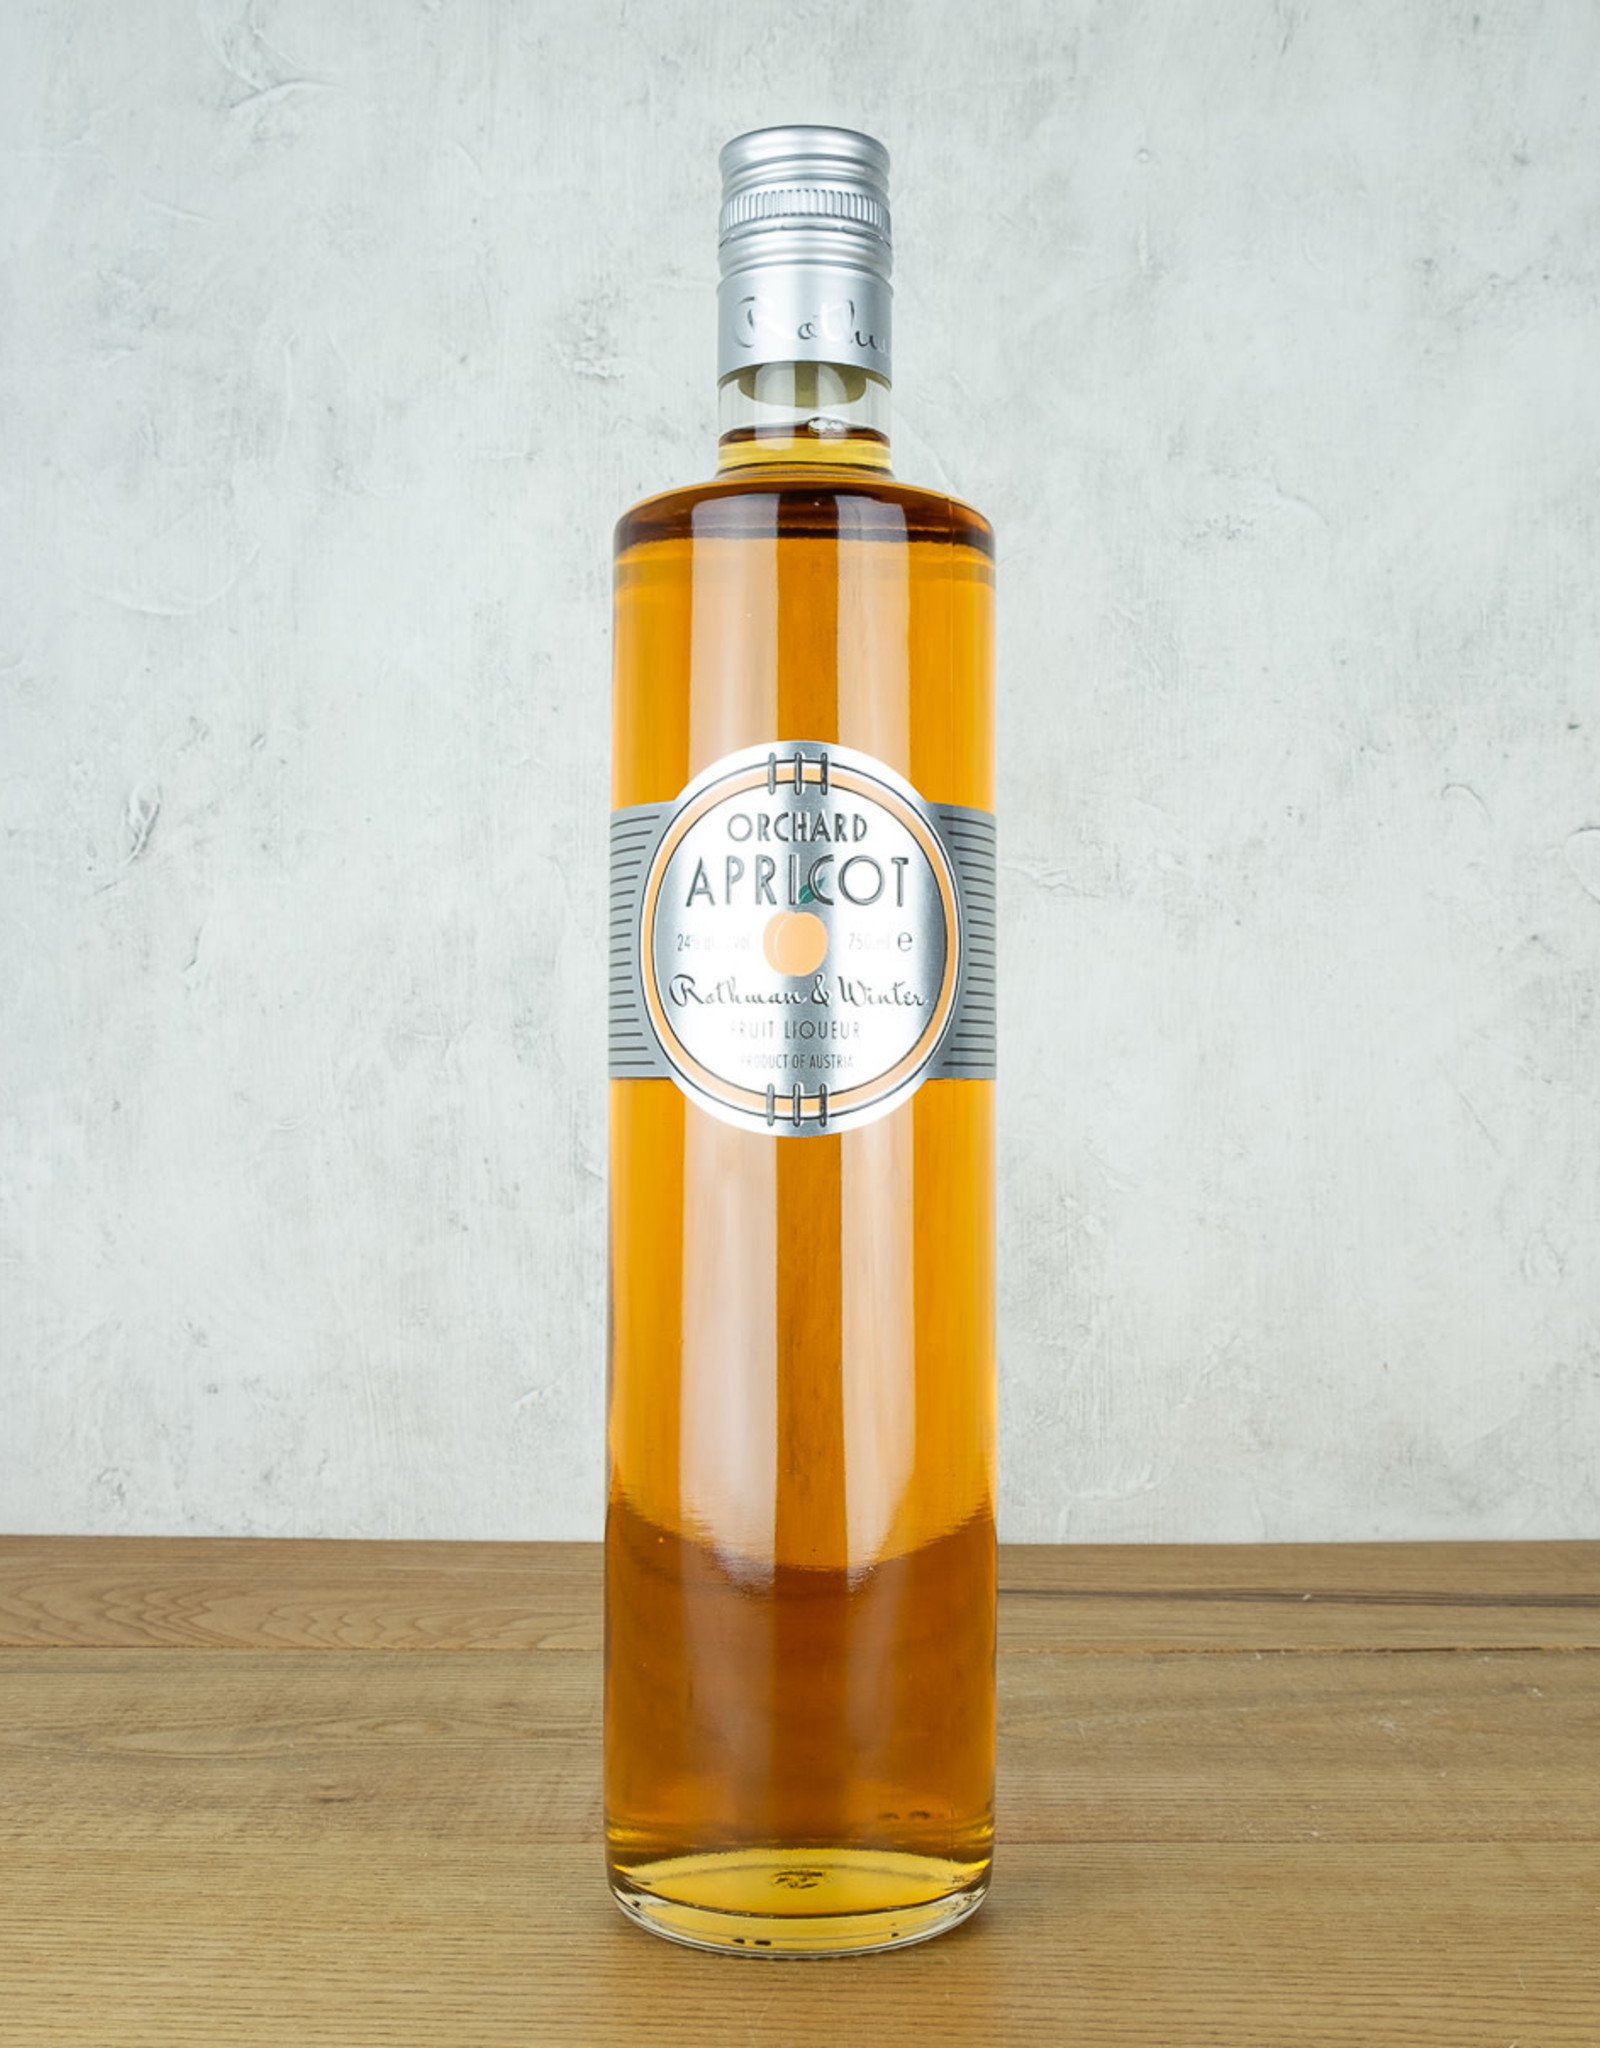 Rothman &Winter Orchard Apricot